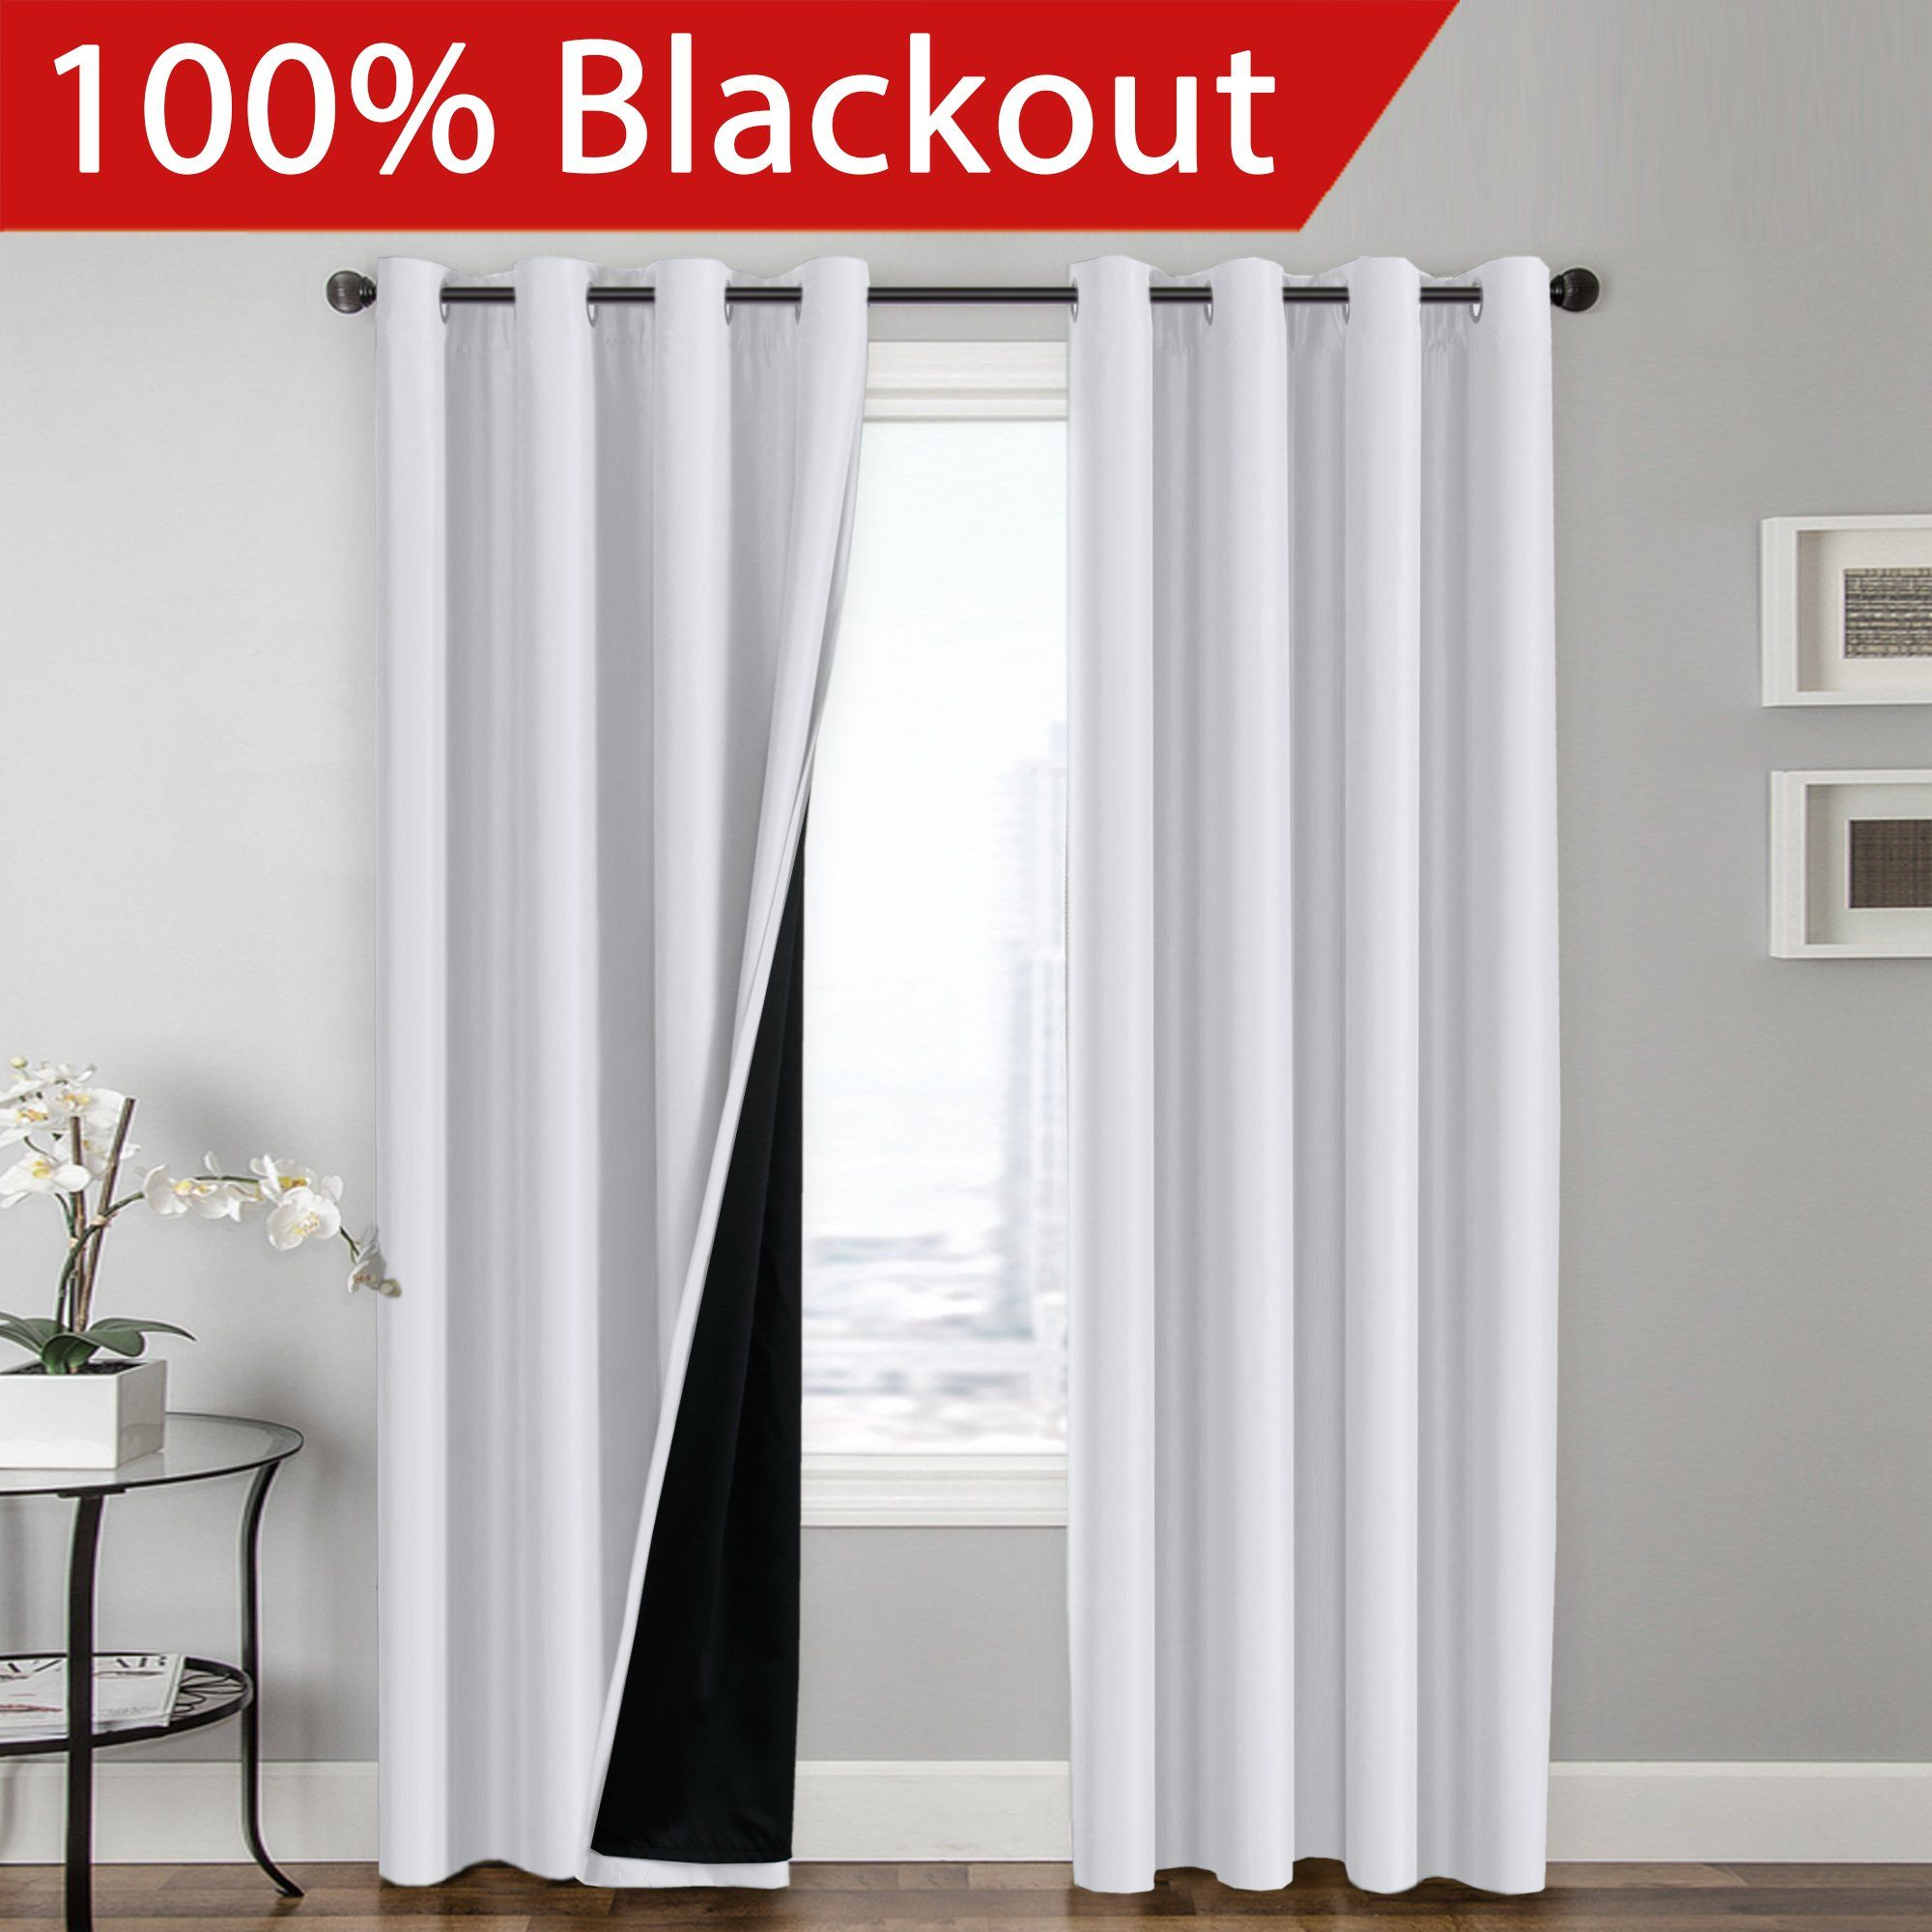 home curtains blackout from matt tulle korean item for free garden models living room in sheer shipping full new white